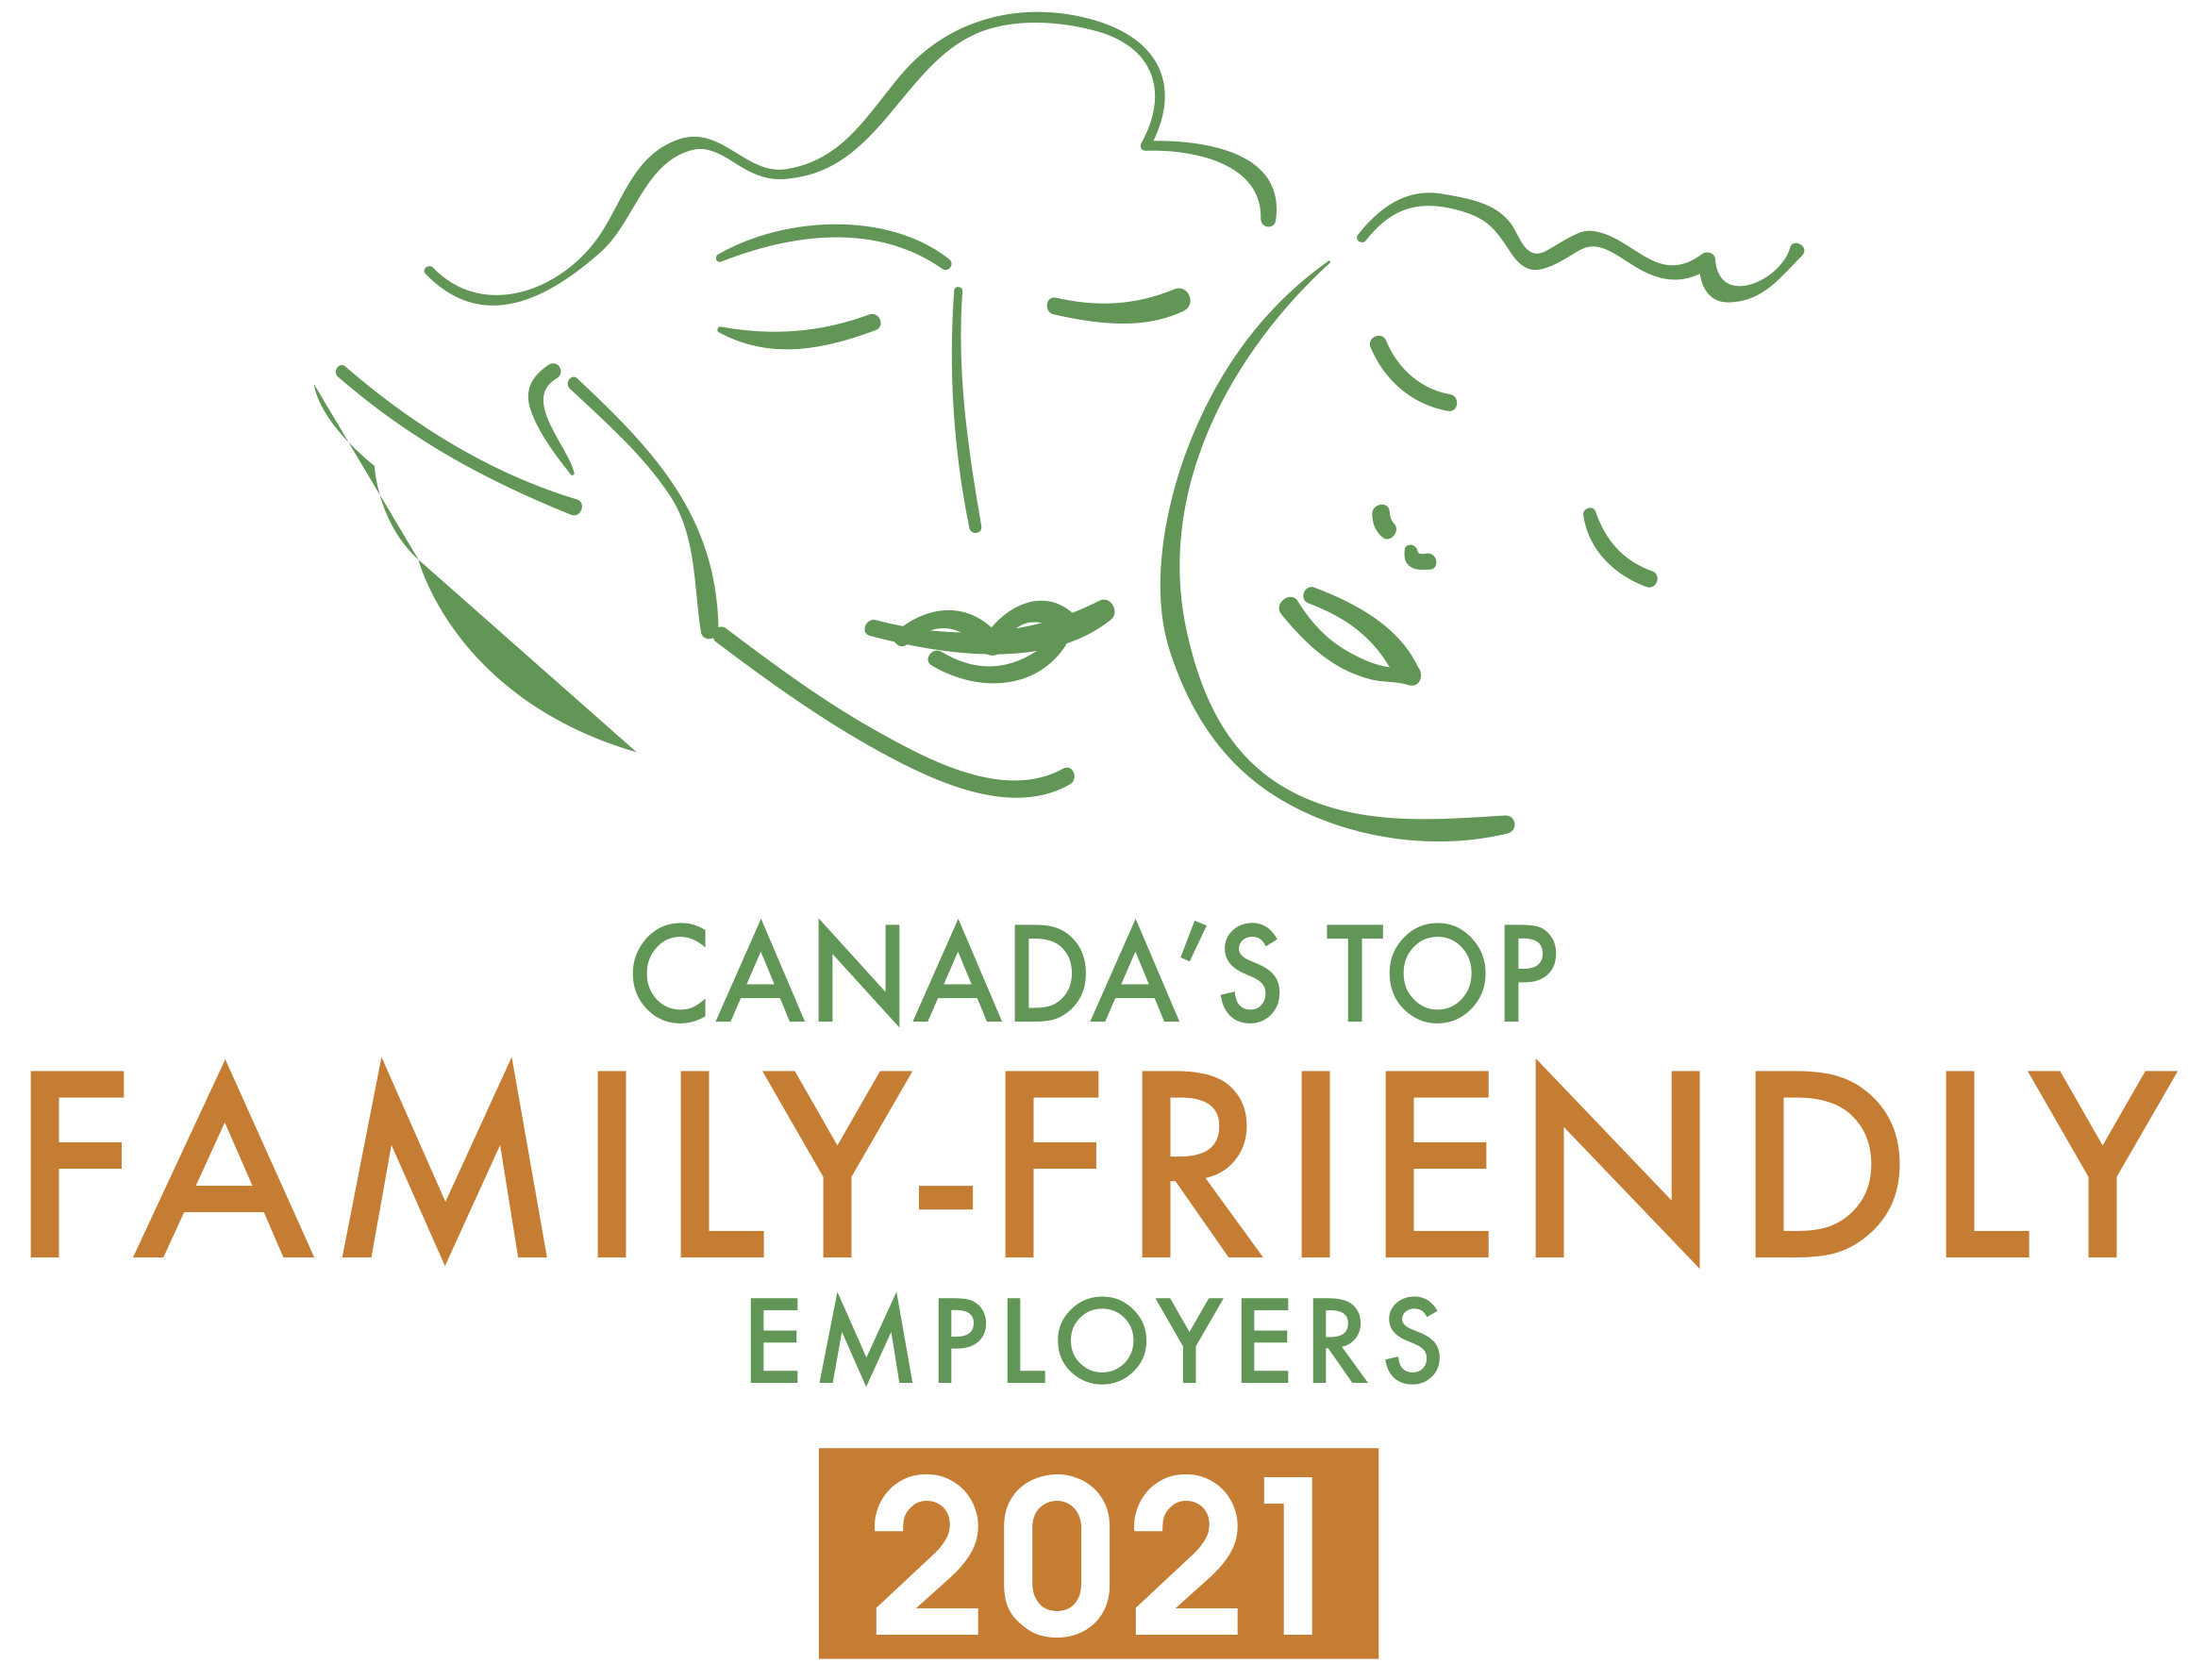 Canada's Top Family-Friendly Employers 2019